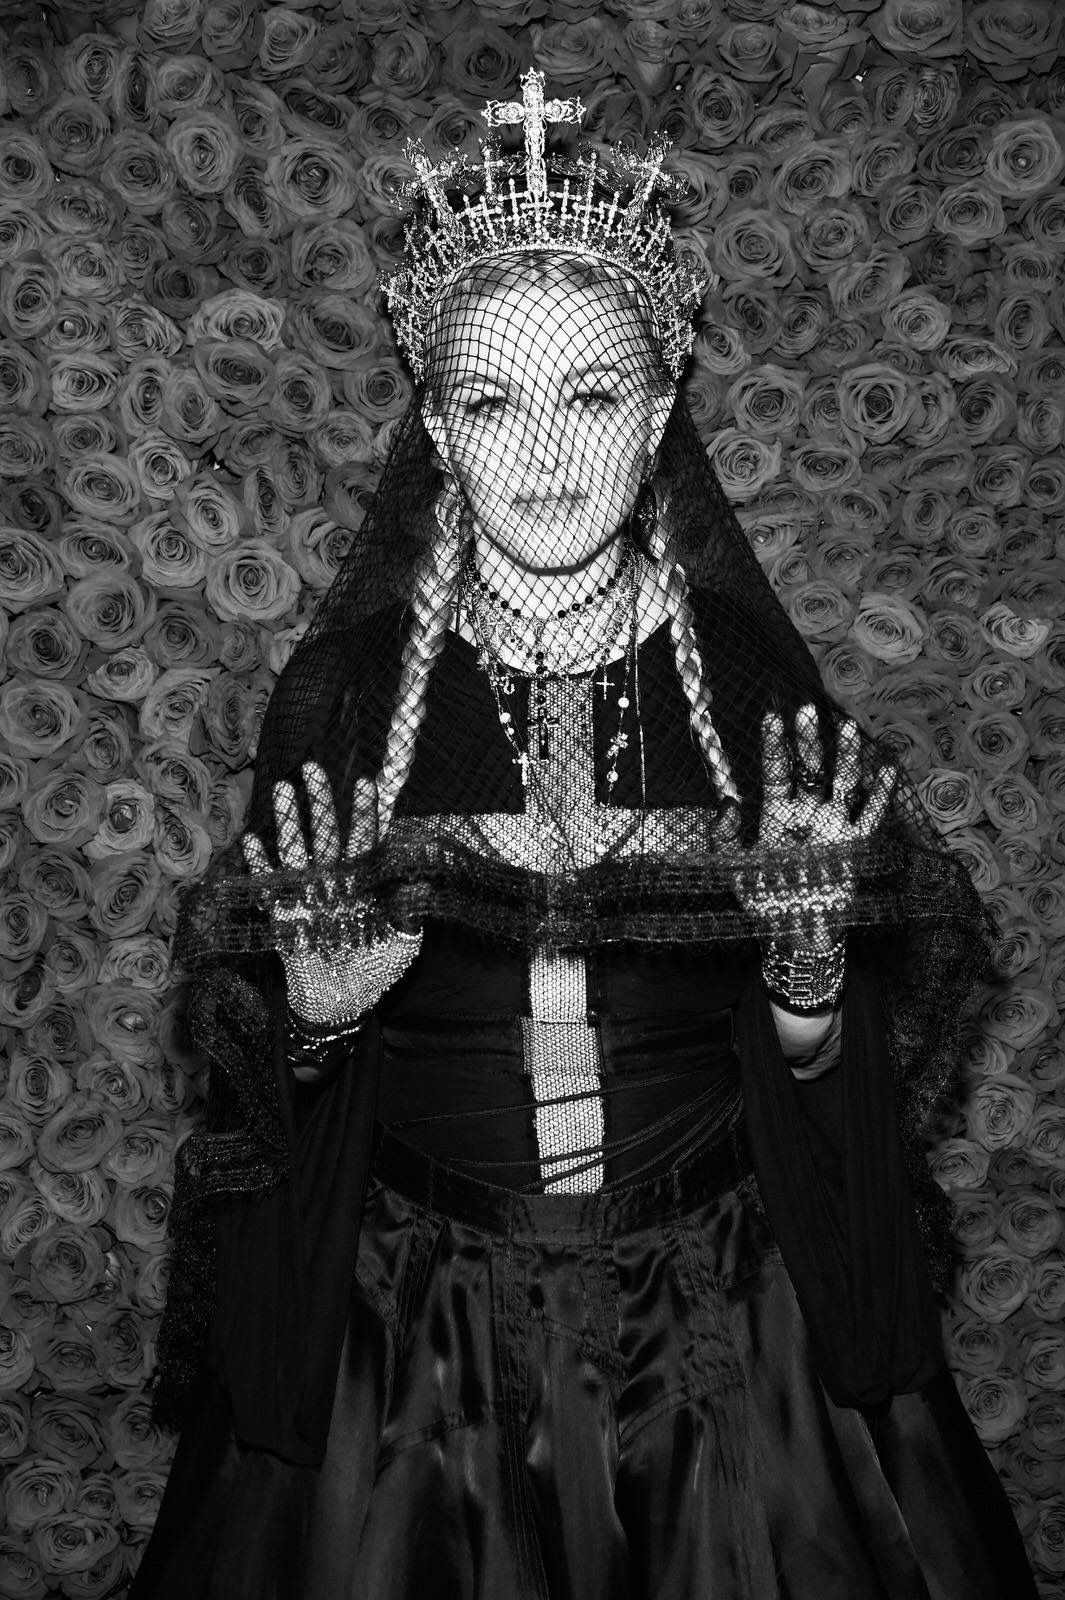 Pin by raluca fratea on madonna pinterest madonna and famous women